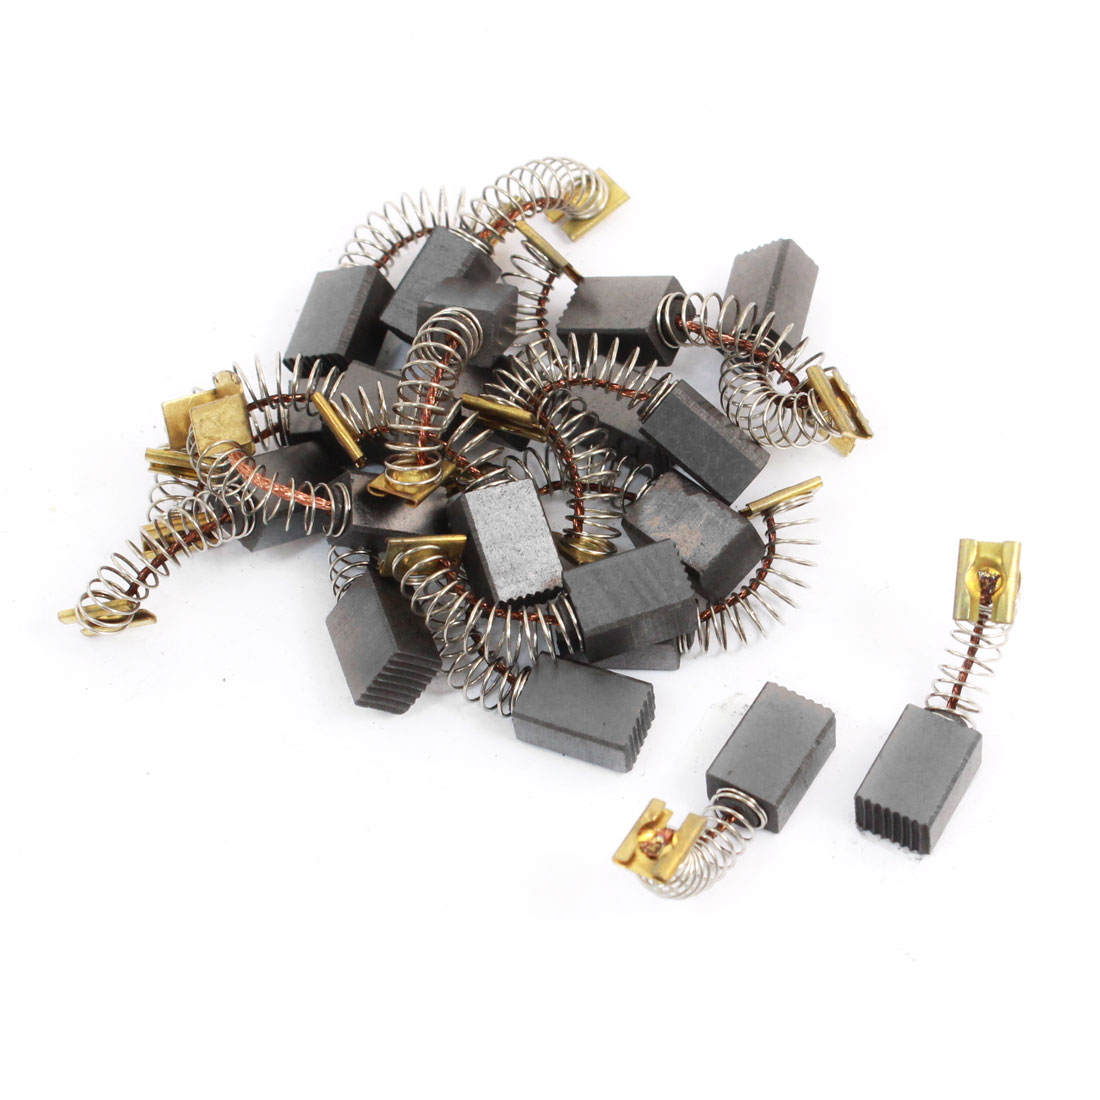 20 Pcs Spare Part Electric Drill Motor 12mm x 8mm x 6mm Carbon Brushes